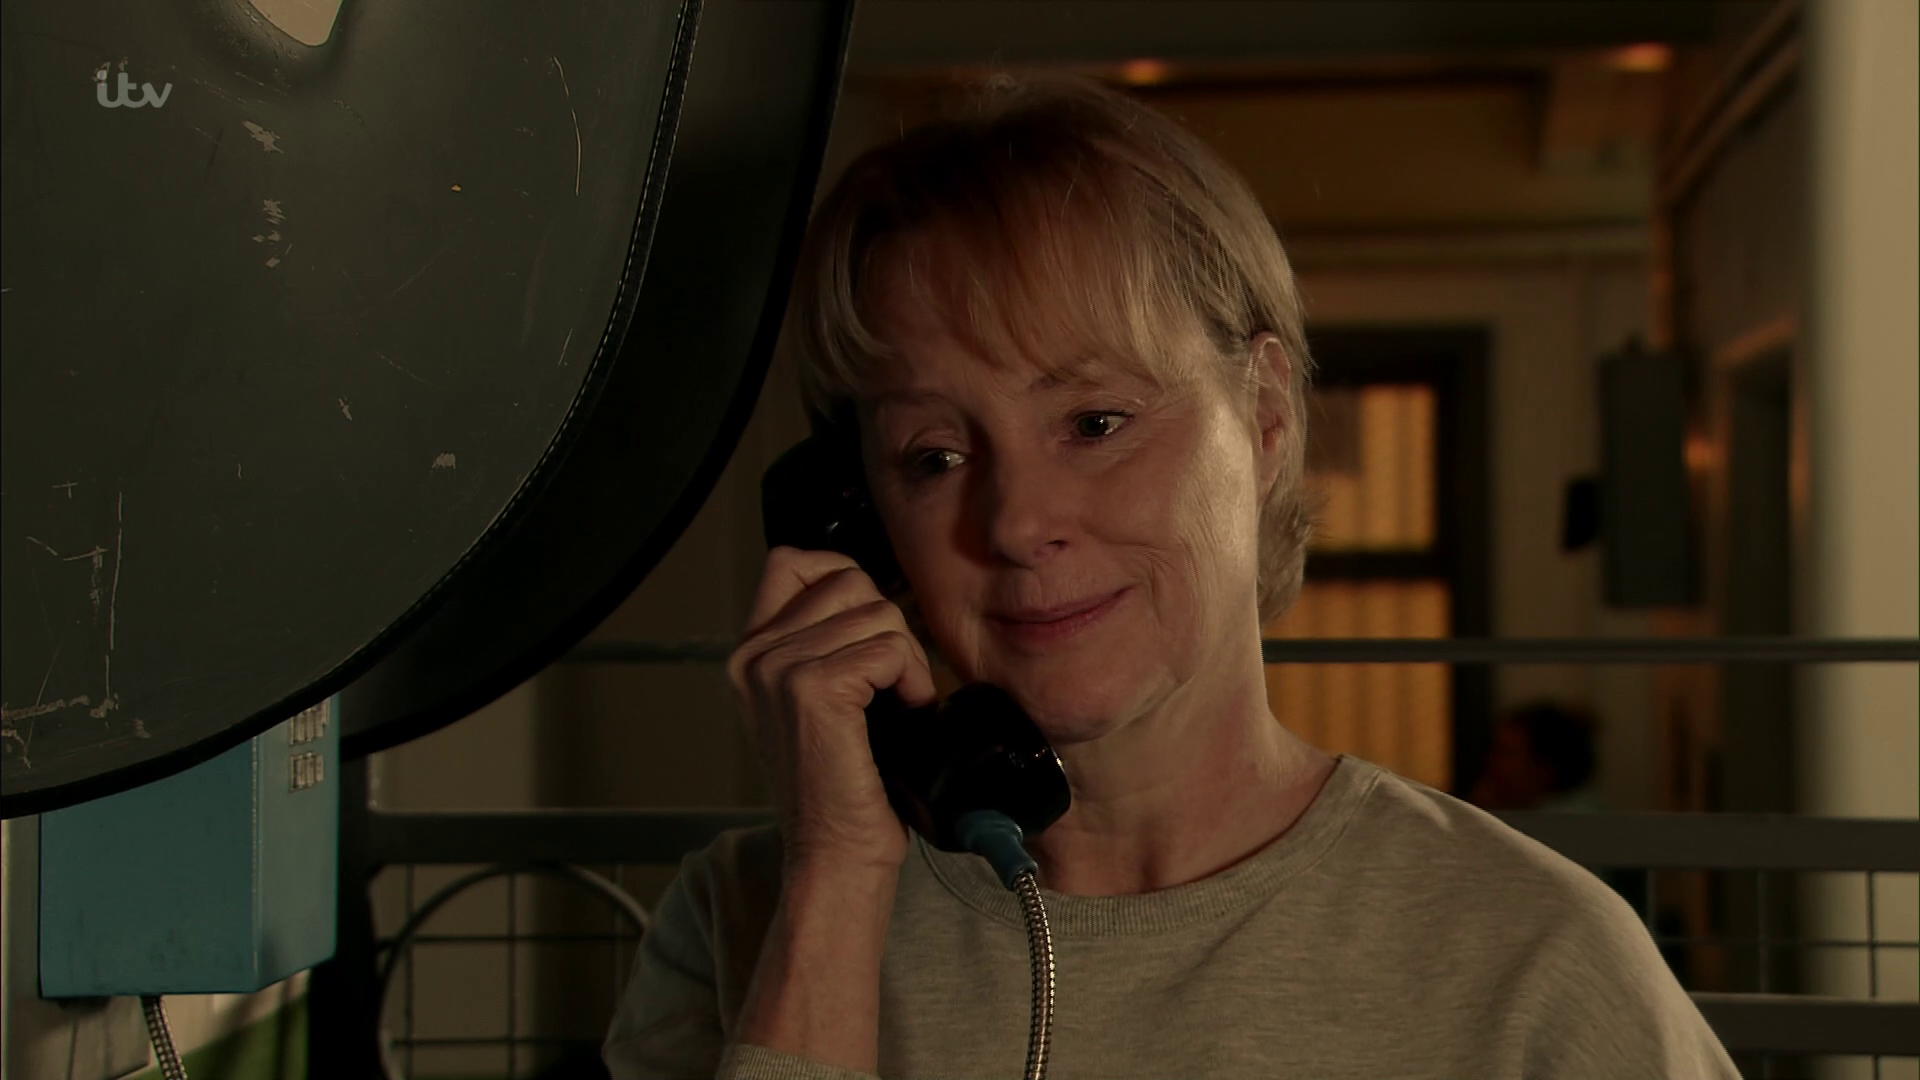 Coronation Street spoilers: Sally Metcalfe brutally attacked in prison as thug Marcia is revealed as her new cellmate